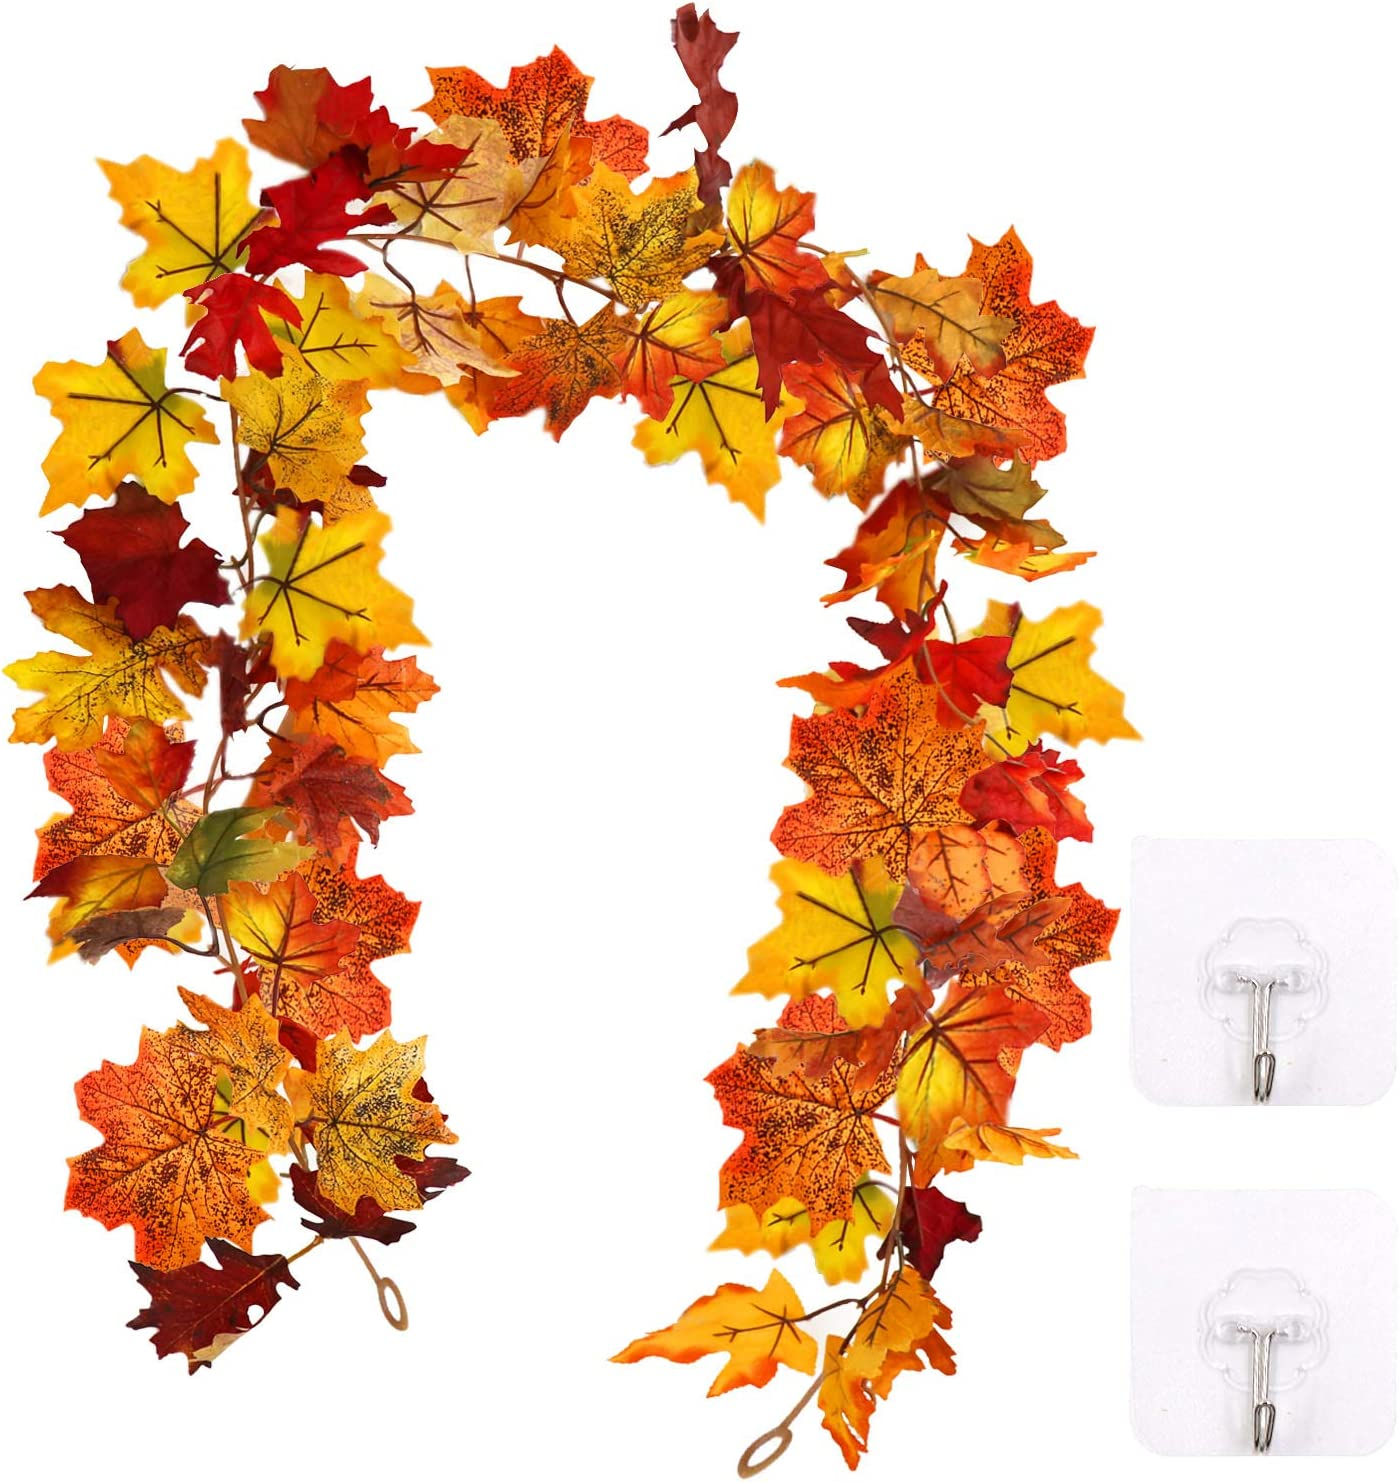 HiGift Fall Garland Maple Leaf with 2 Self-Adhesive Hook up - Artificial Fall Foliage Garland Thanksgiving Fireplace Festival Decor for Home Wedding Party- 5.8 Ft